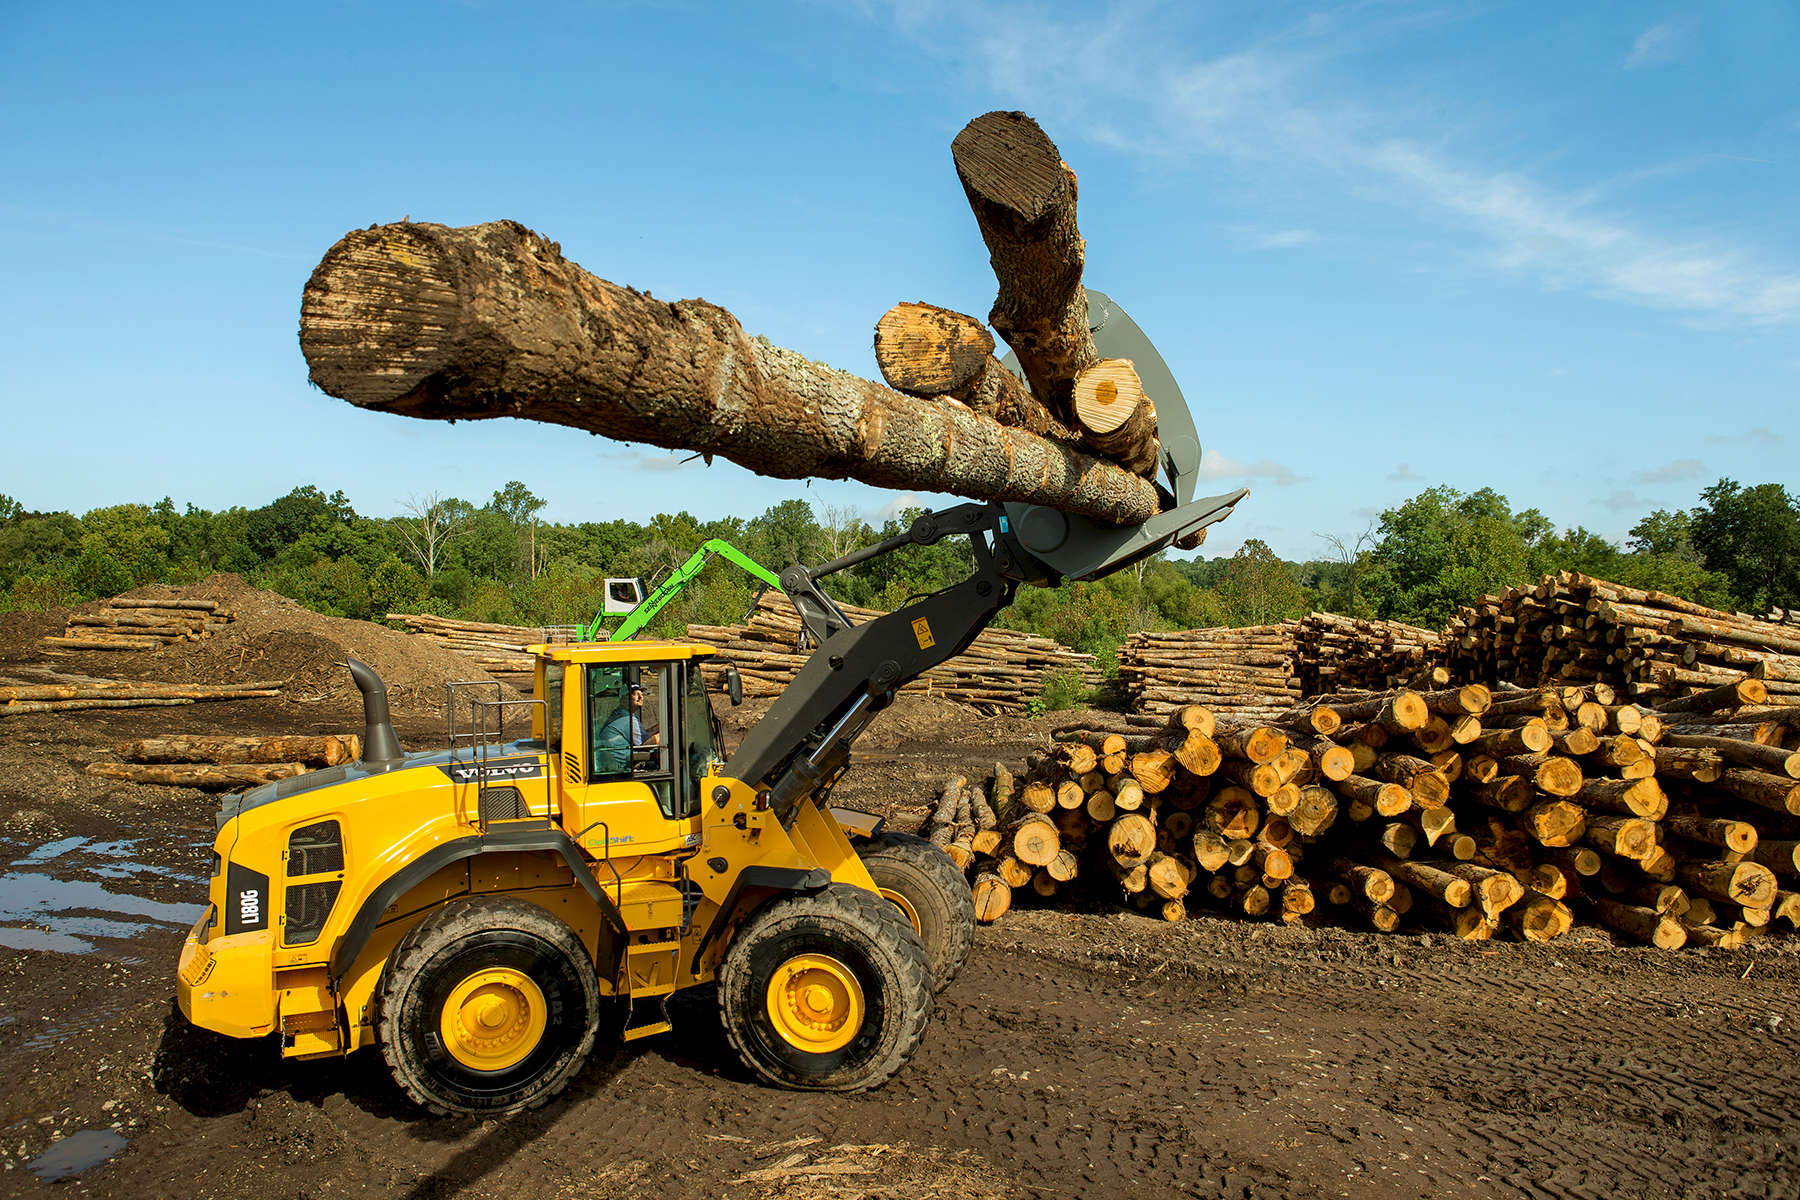 The driver of a Volvo loader drives four logs into the lot of a pallet company in North Carolina. Special lighting makes it possible to see the face of an employee as he moves logs inside the cab of the tractor/loader. Without purposeful lighting, the employee would be too dark to see.